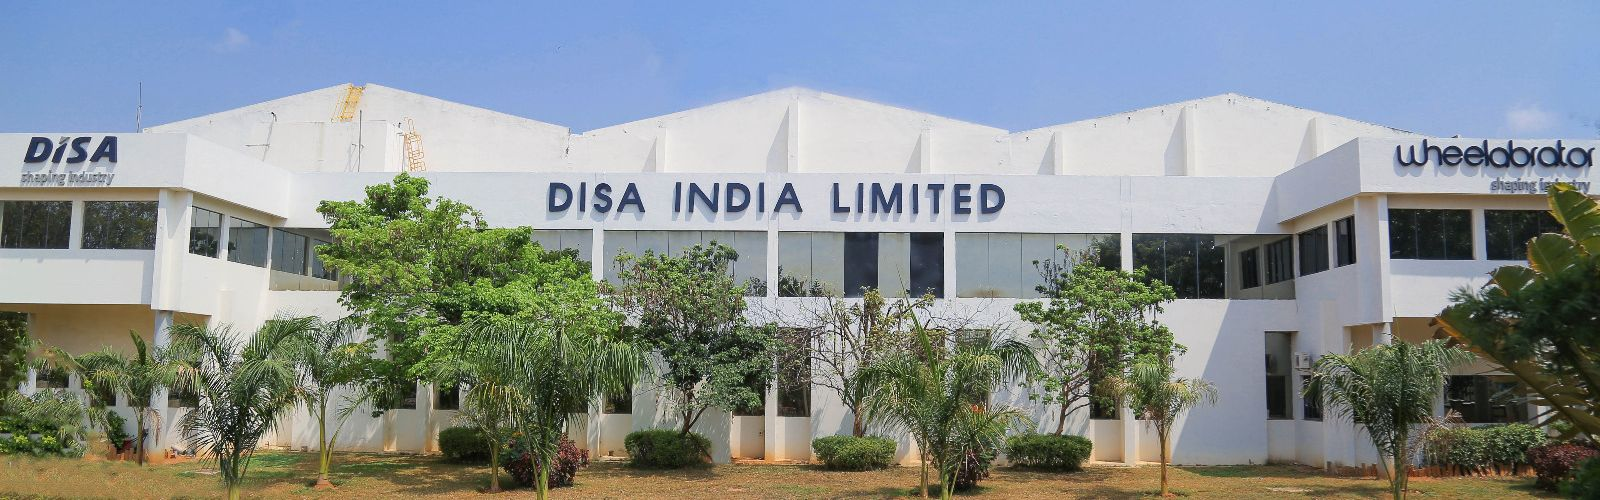 image of DISA Hosakote factory, India